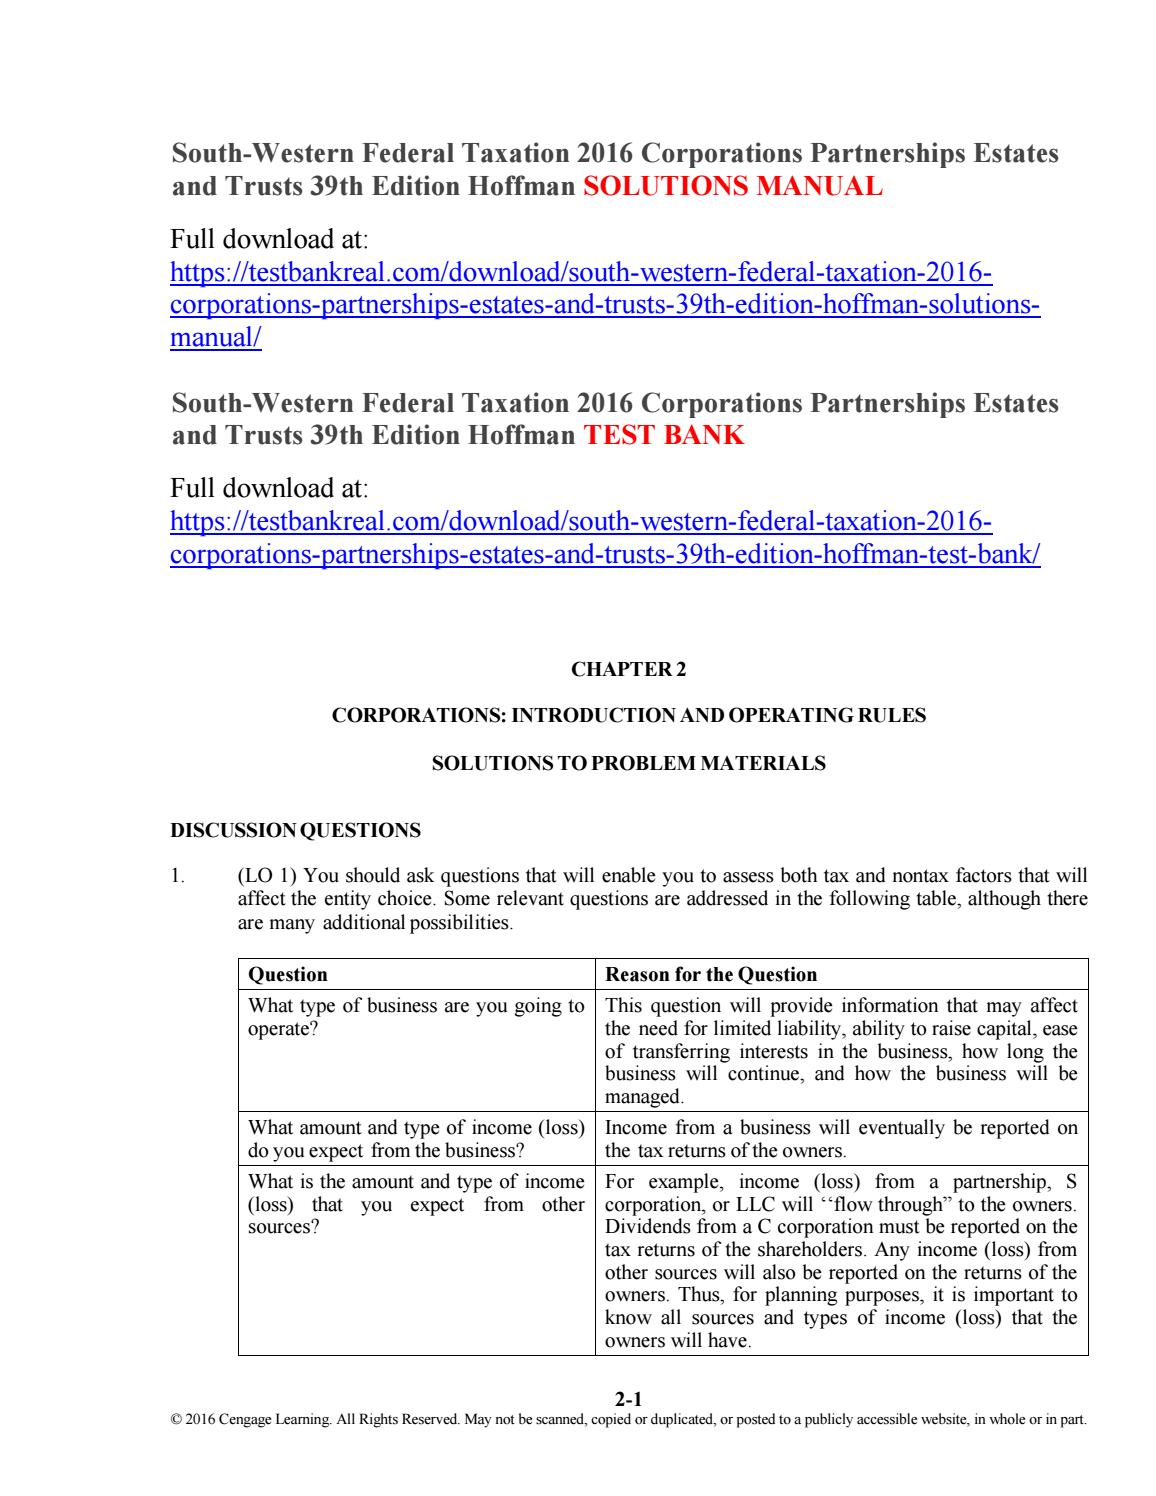 South Western Federal Taxation 2019 Corporations Partnerships Estates And Trusts Pdf